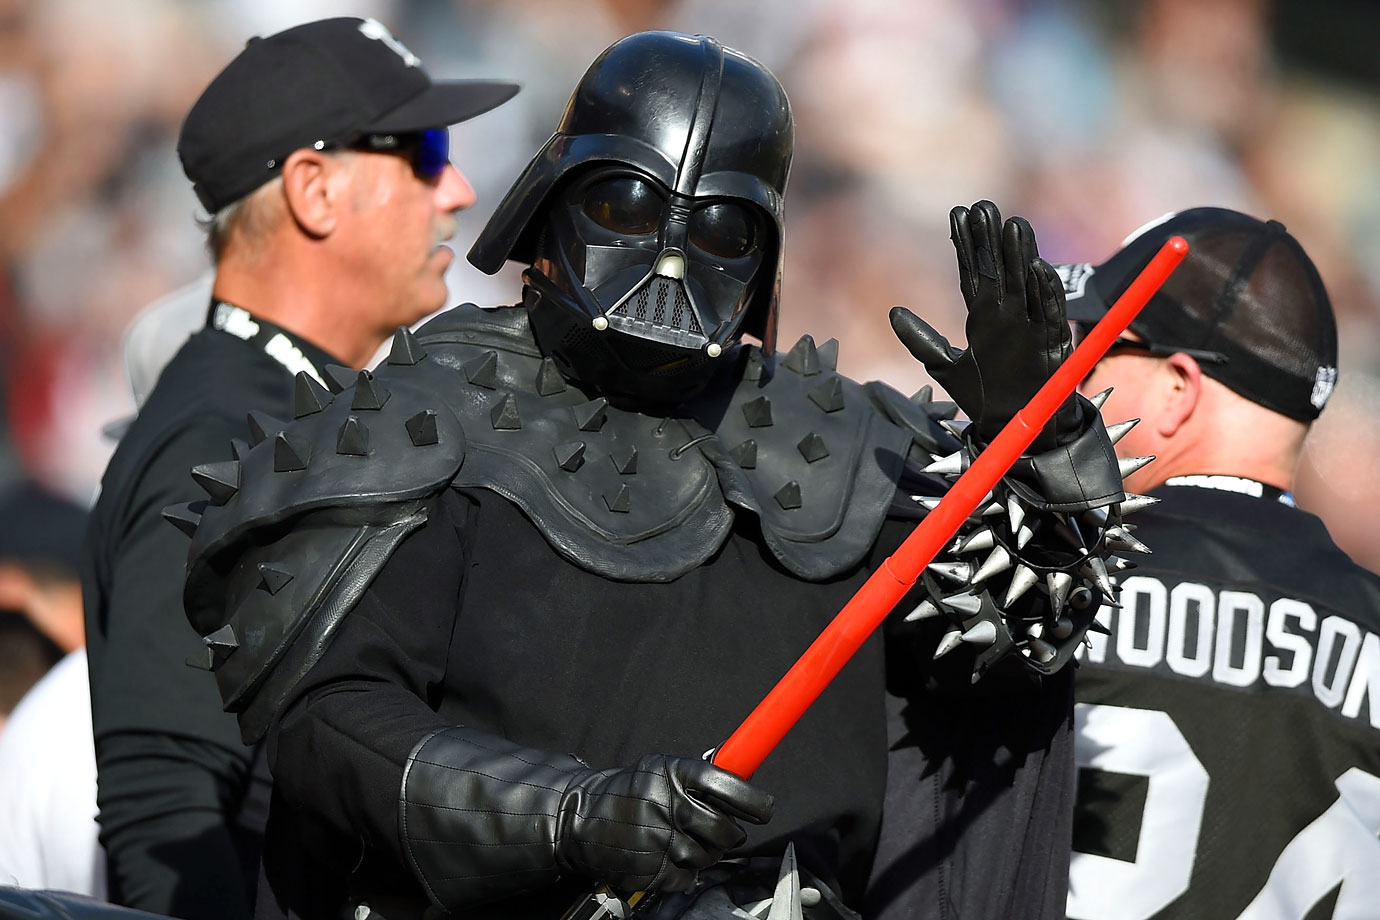 An Oakland Raiders fan dressed as Darth Vader supports his team during their game against the Buffalo Bills on Dec. 21, 2014 at O.co Coliseum in Oakland, Calif.